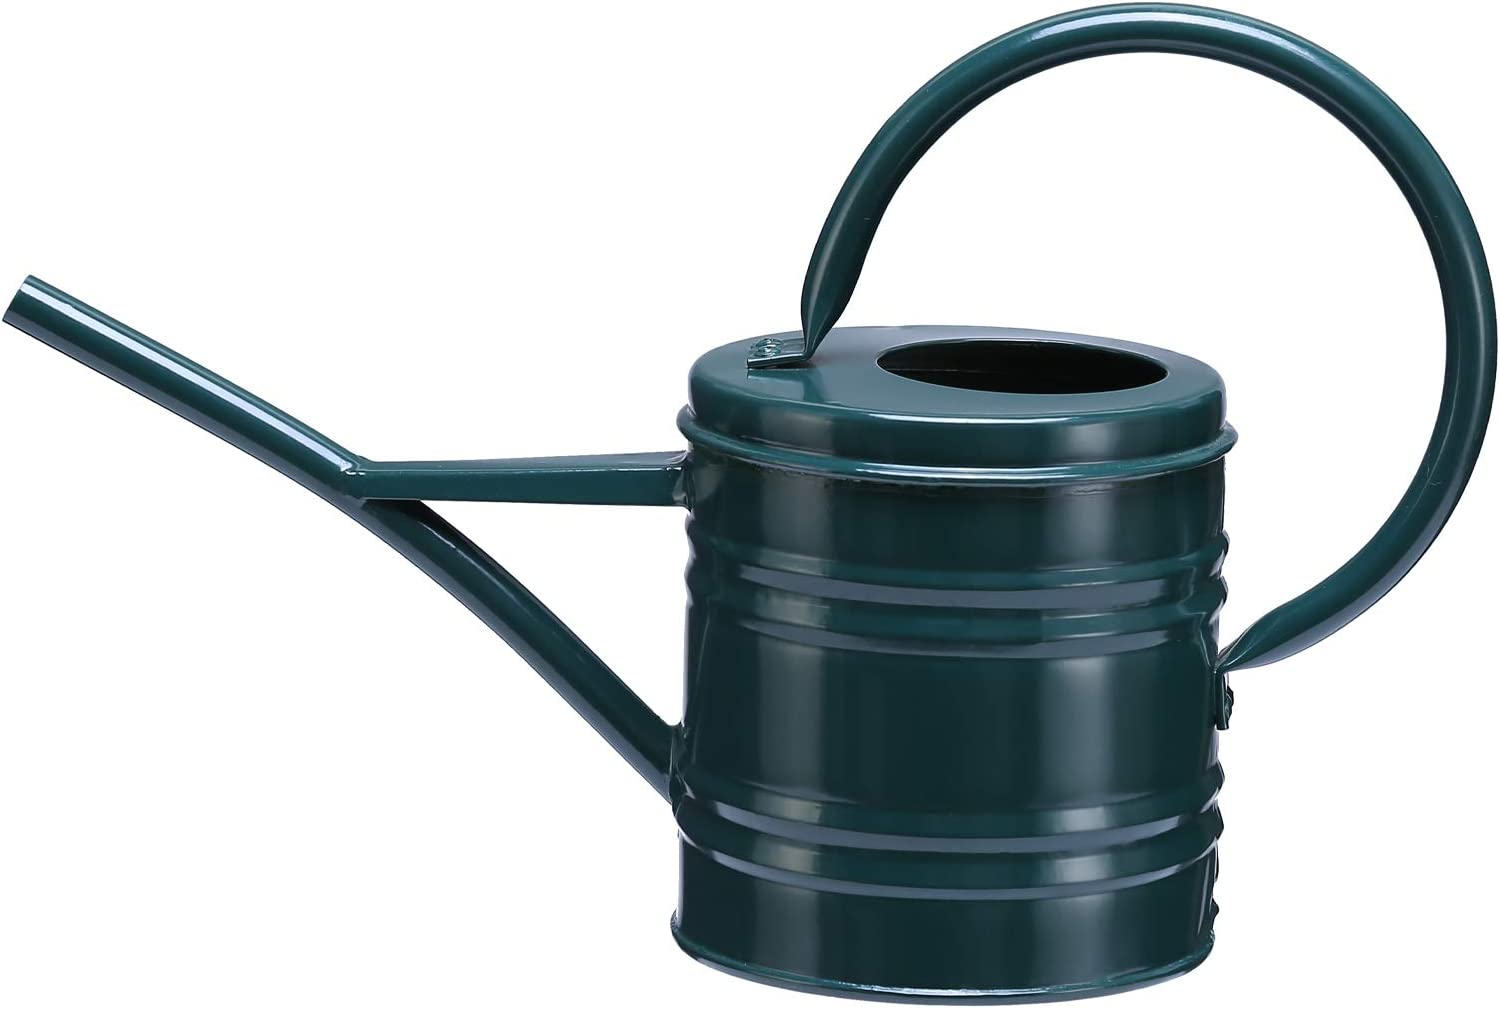 Asvert Metal Watering Can for Plant Flower Garden Bonsai, Strong Body Sprinkling Can for Outdoor Indoor House, Long Spout Plant Watering Use with Comfort Handle, 0.26 Gallon(Dark Green)